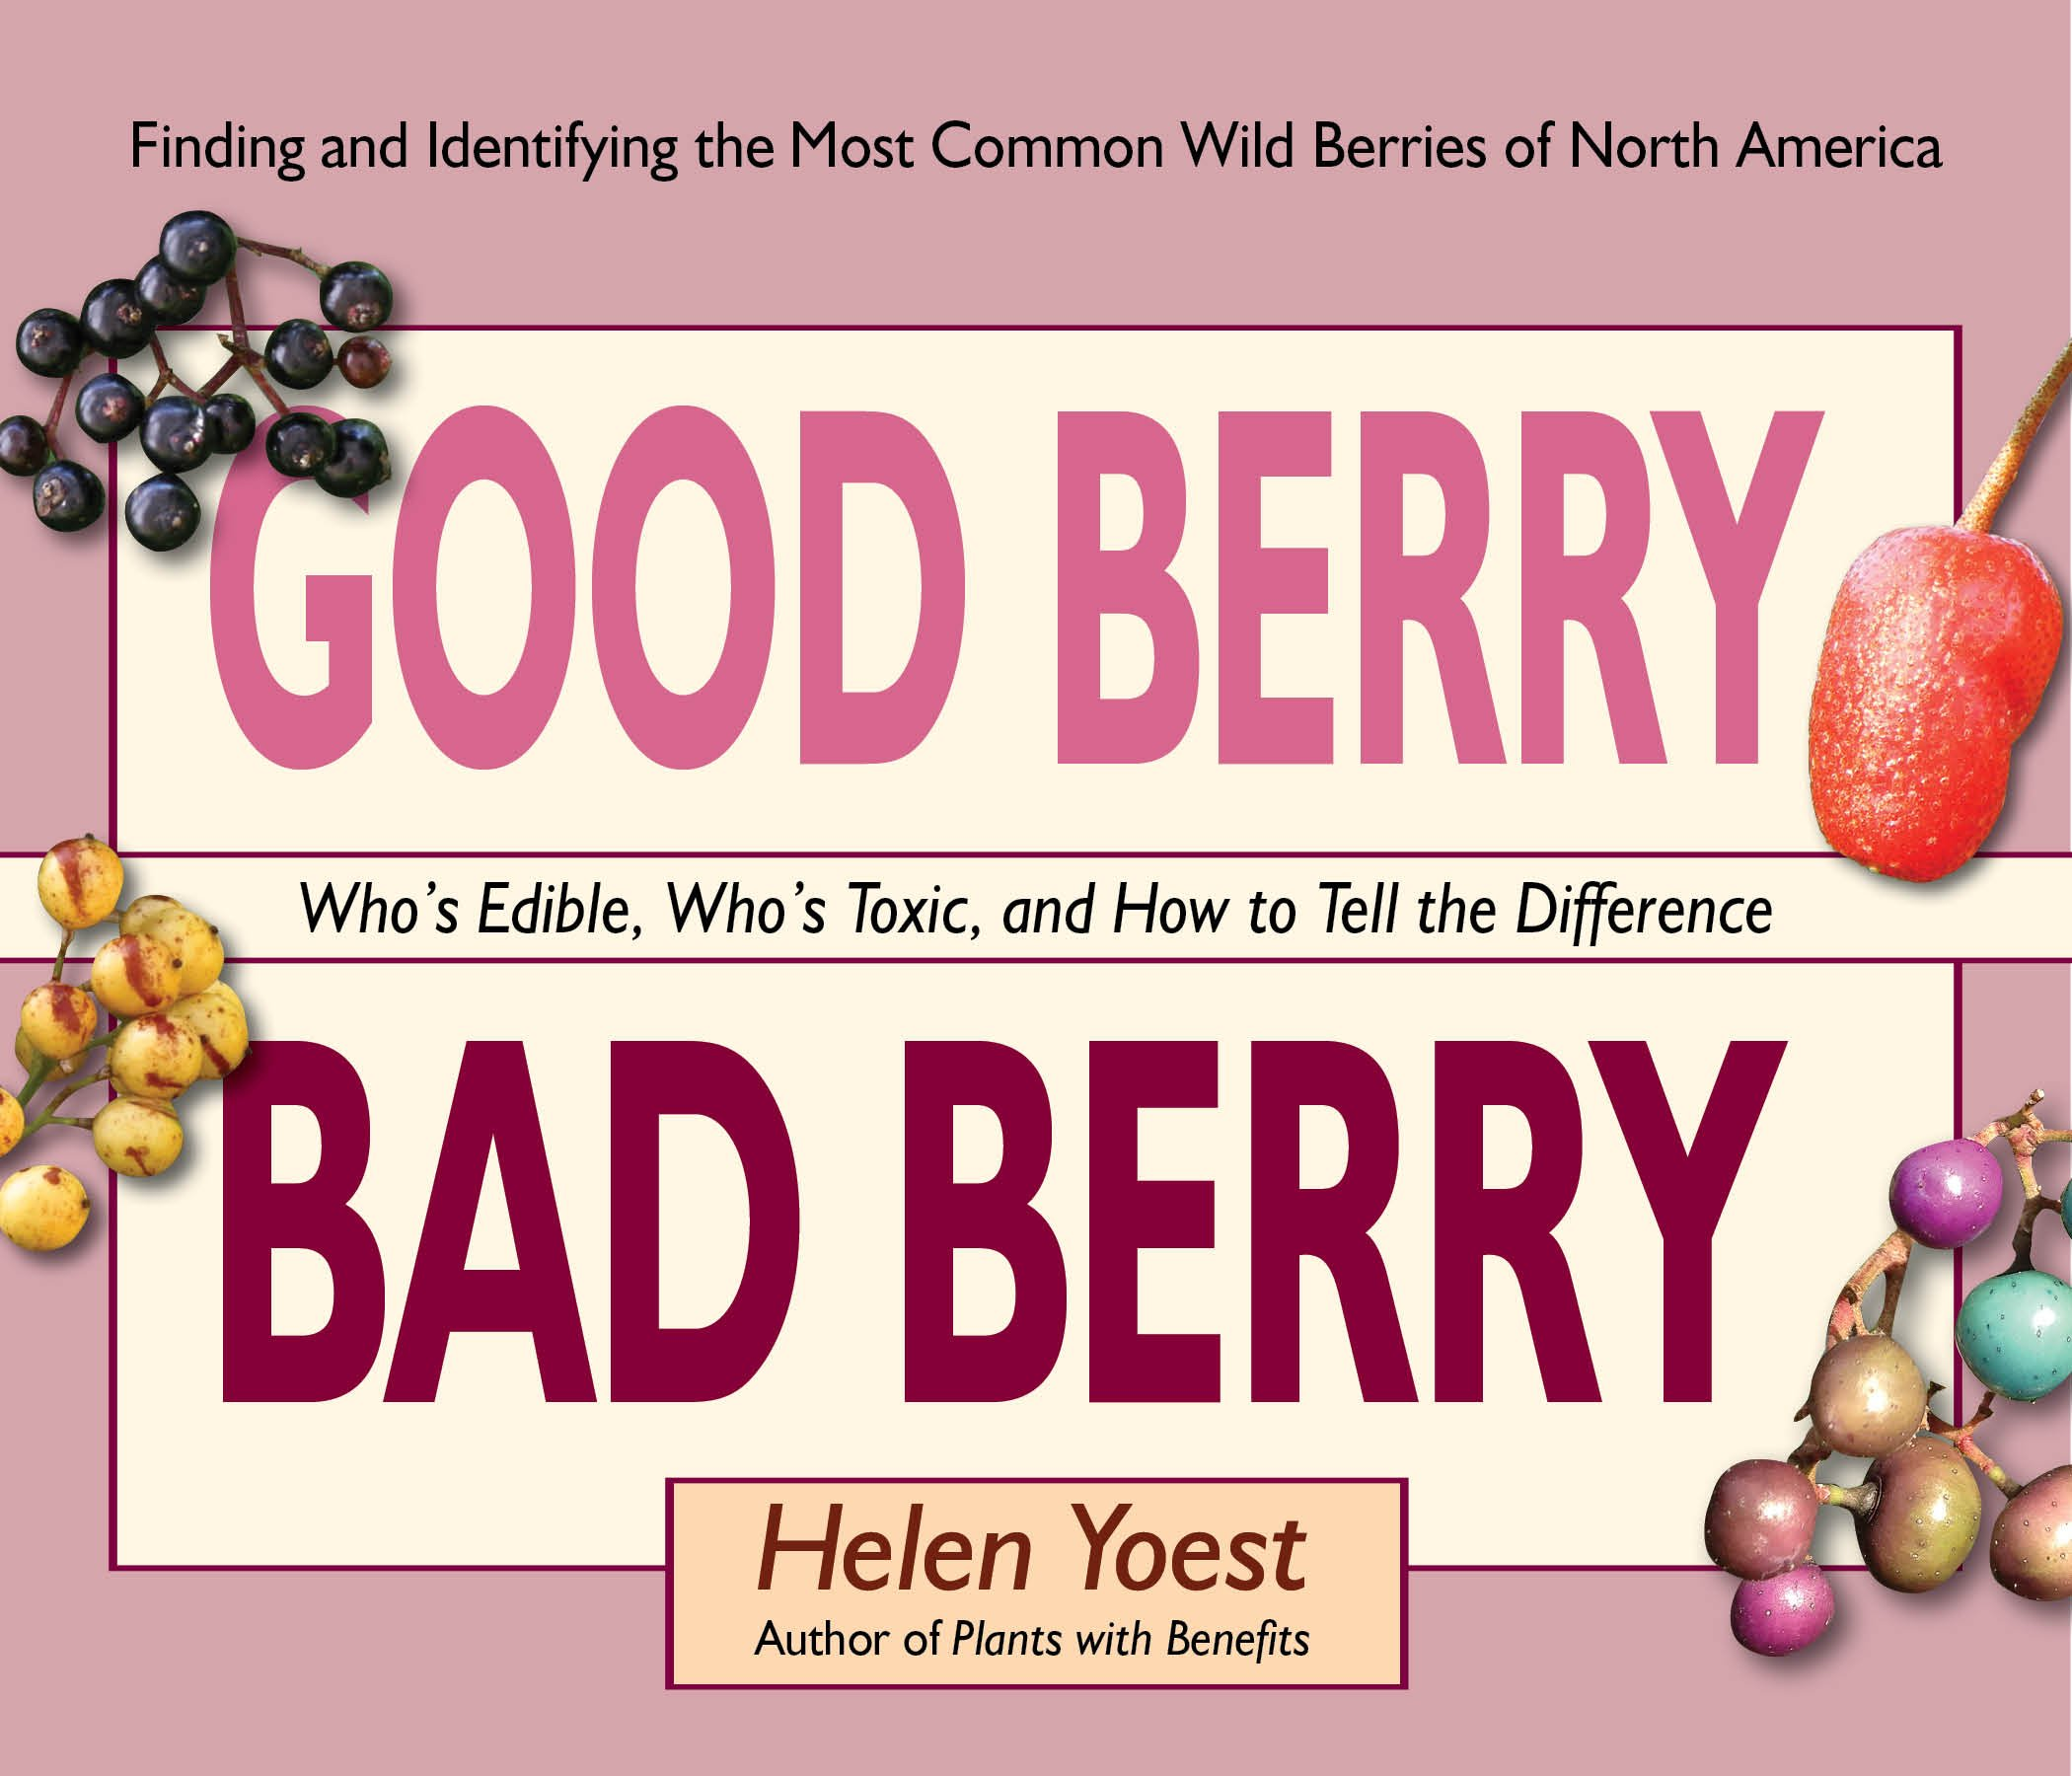 Whos Edible Whos Toxic and How to Tell the Difference Good Berry Bad Berry